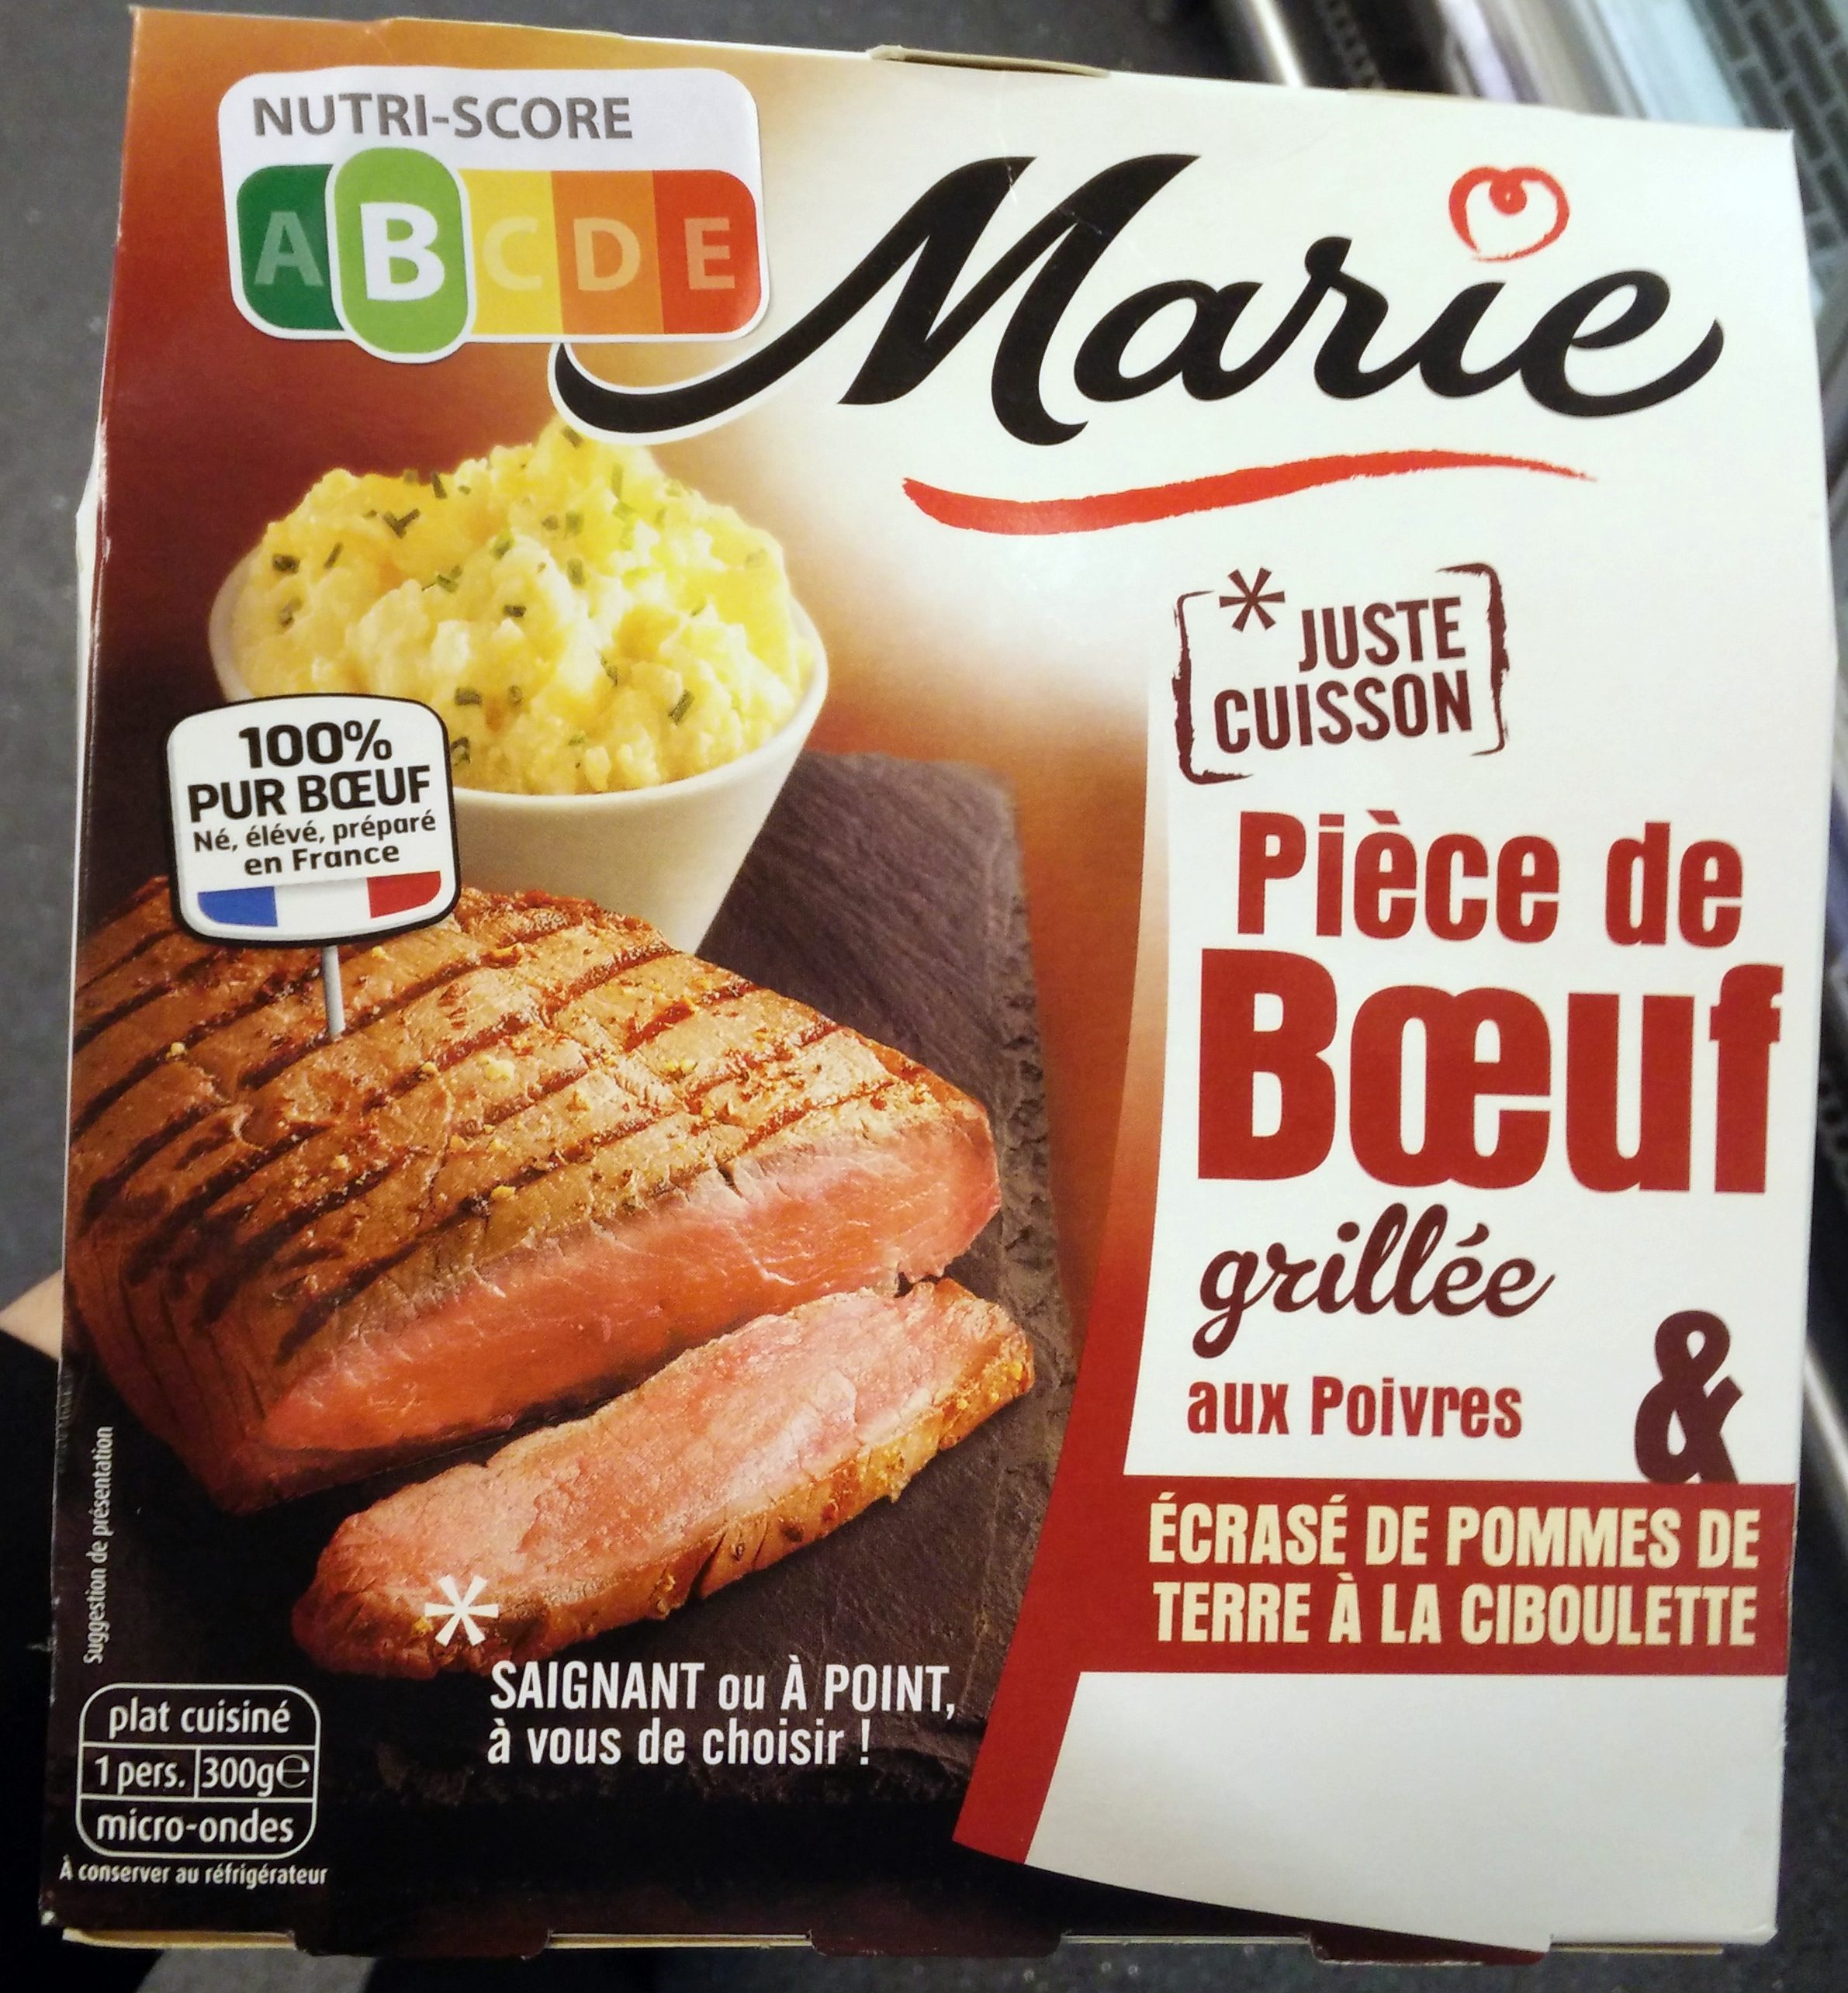 pi ce de boeuf grill e aux poivres cras de pommes de terre la ciboulette marie 300 g. Black Bedroom Furniture Sets. Home Design Ideas